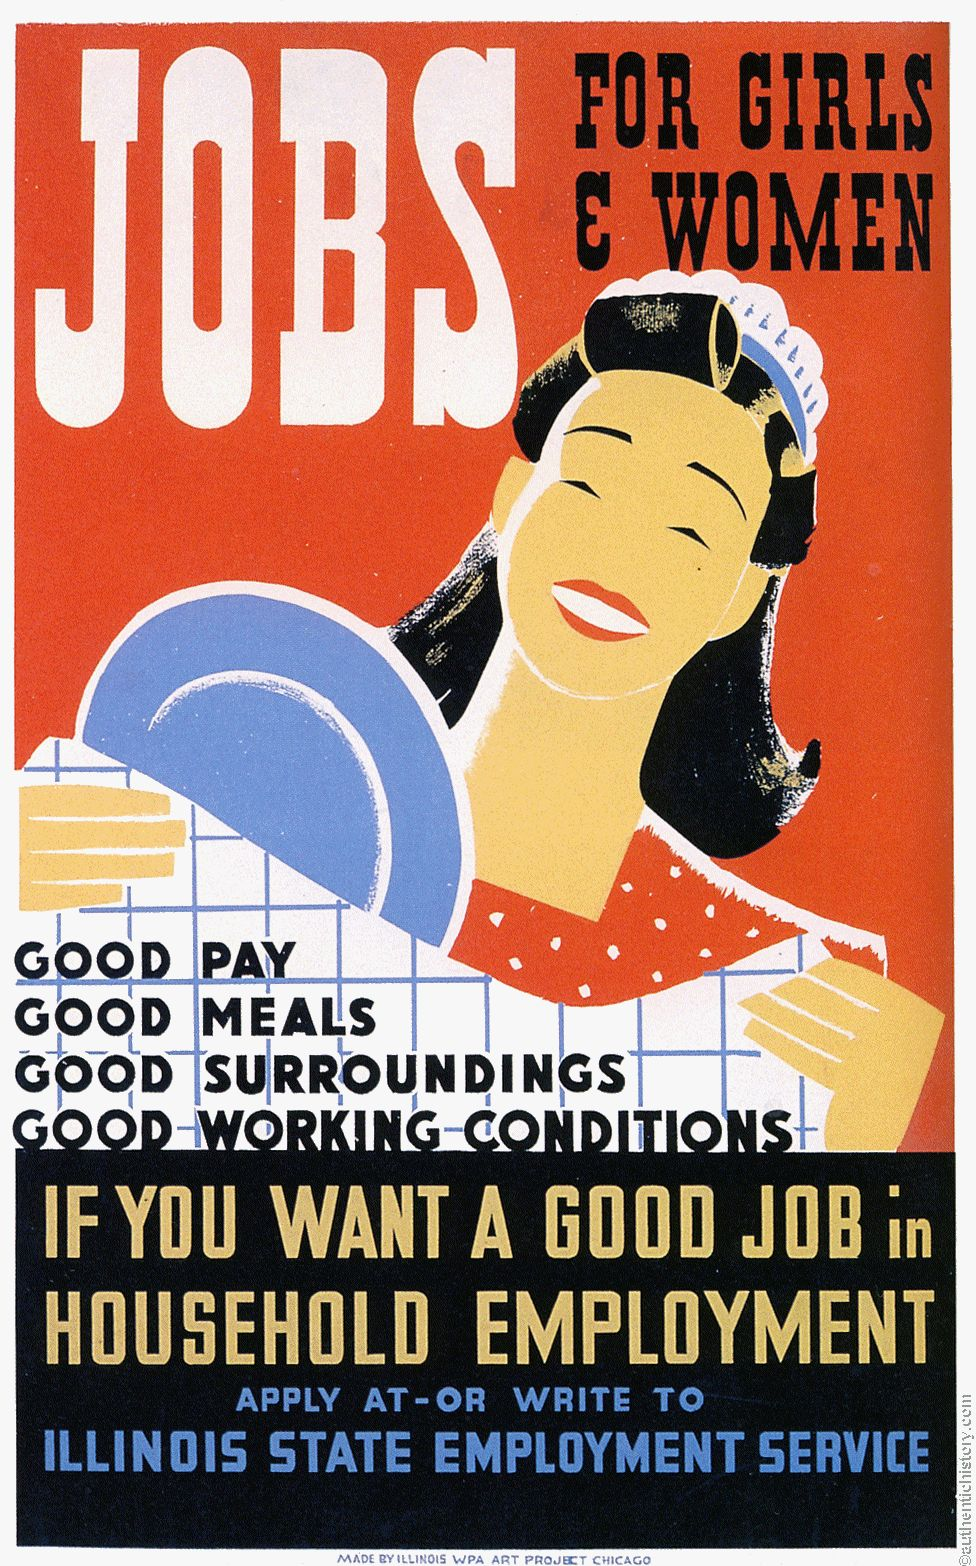 WPA_Art_Project_Poster-Jobs_For_Girls_and_Women-Albert_M_Bender.jpg